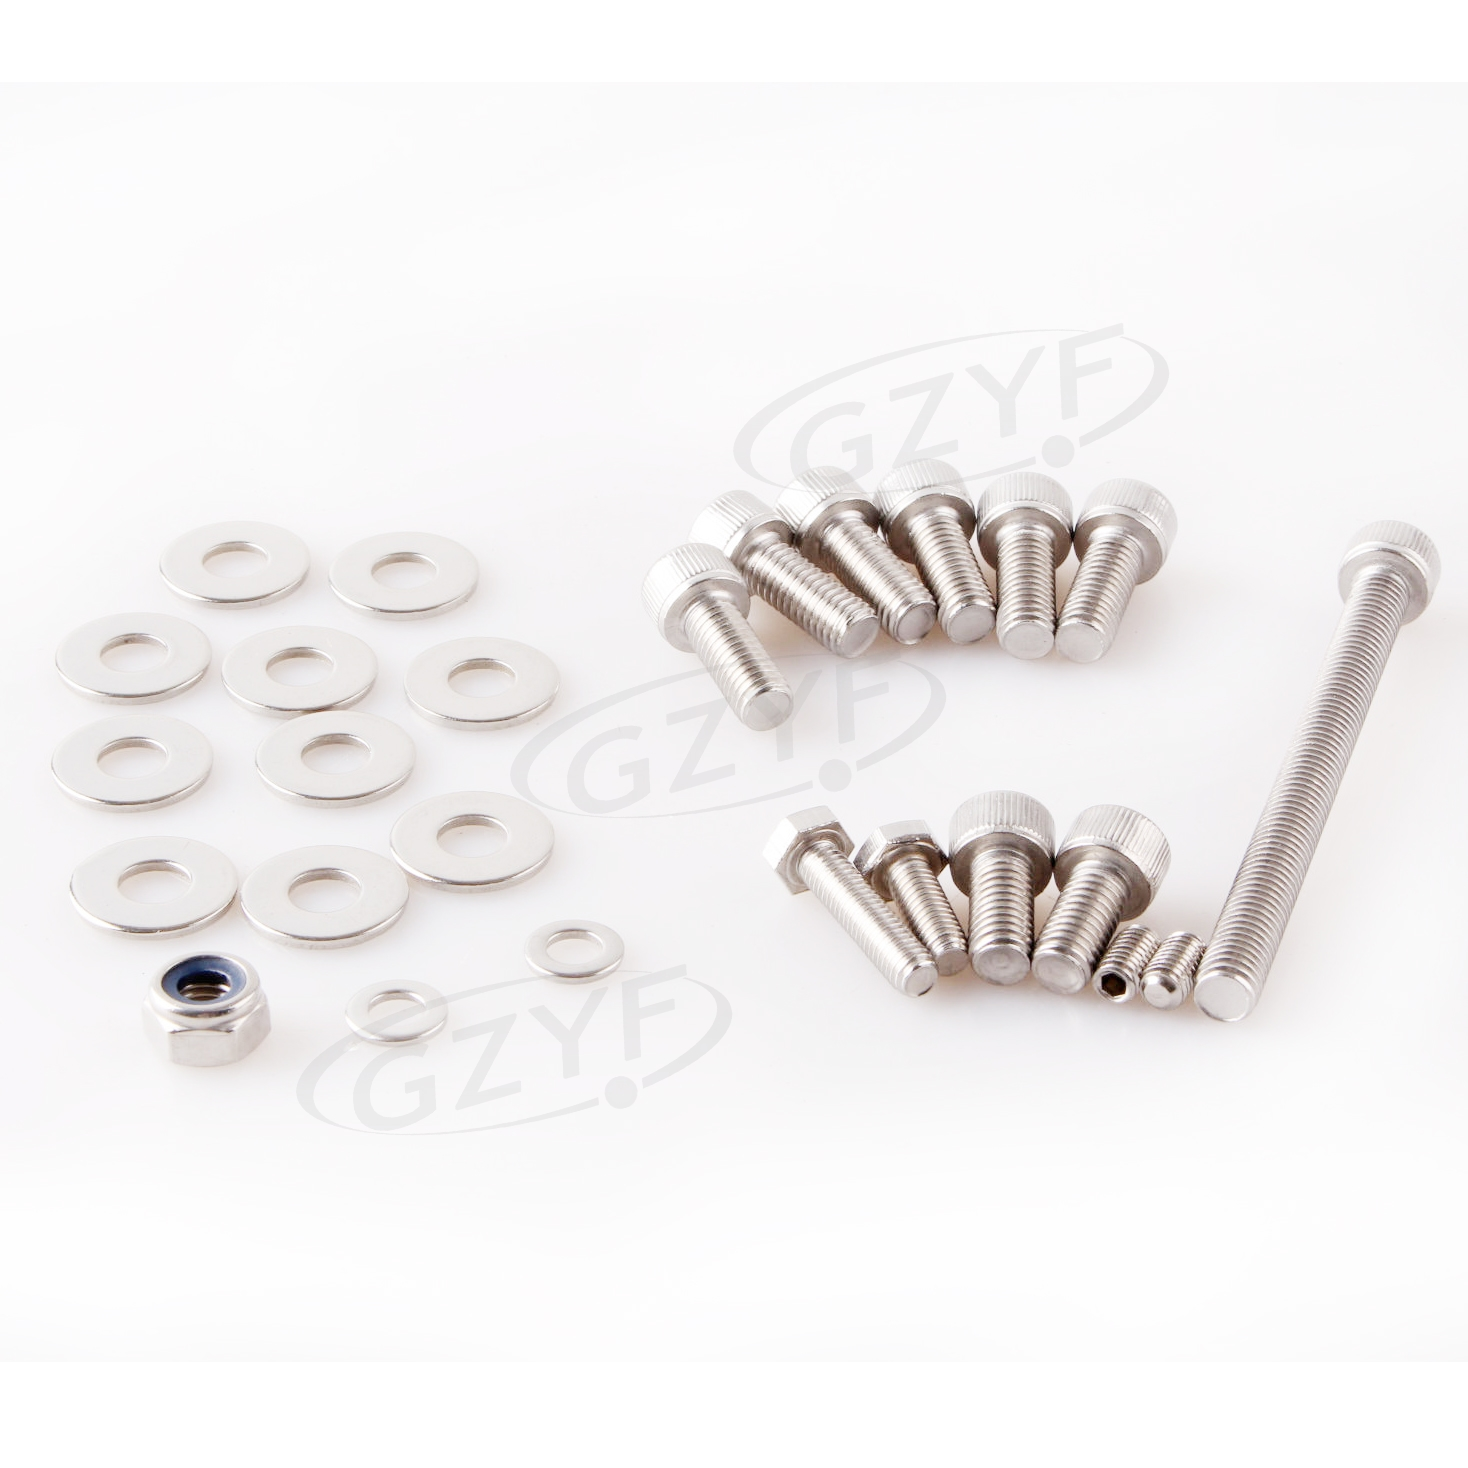 Highway Crash Bars Protector Bracket Kit For BMW R1200RT 2005-2013 High Quality Motorcycle Accessory Parts